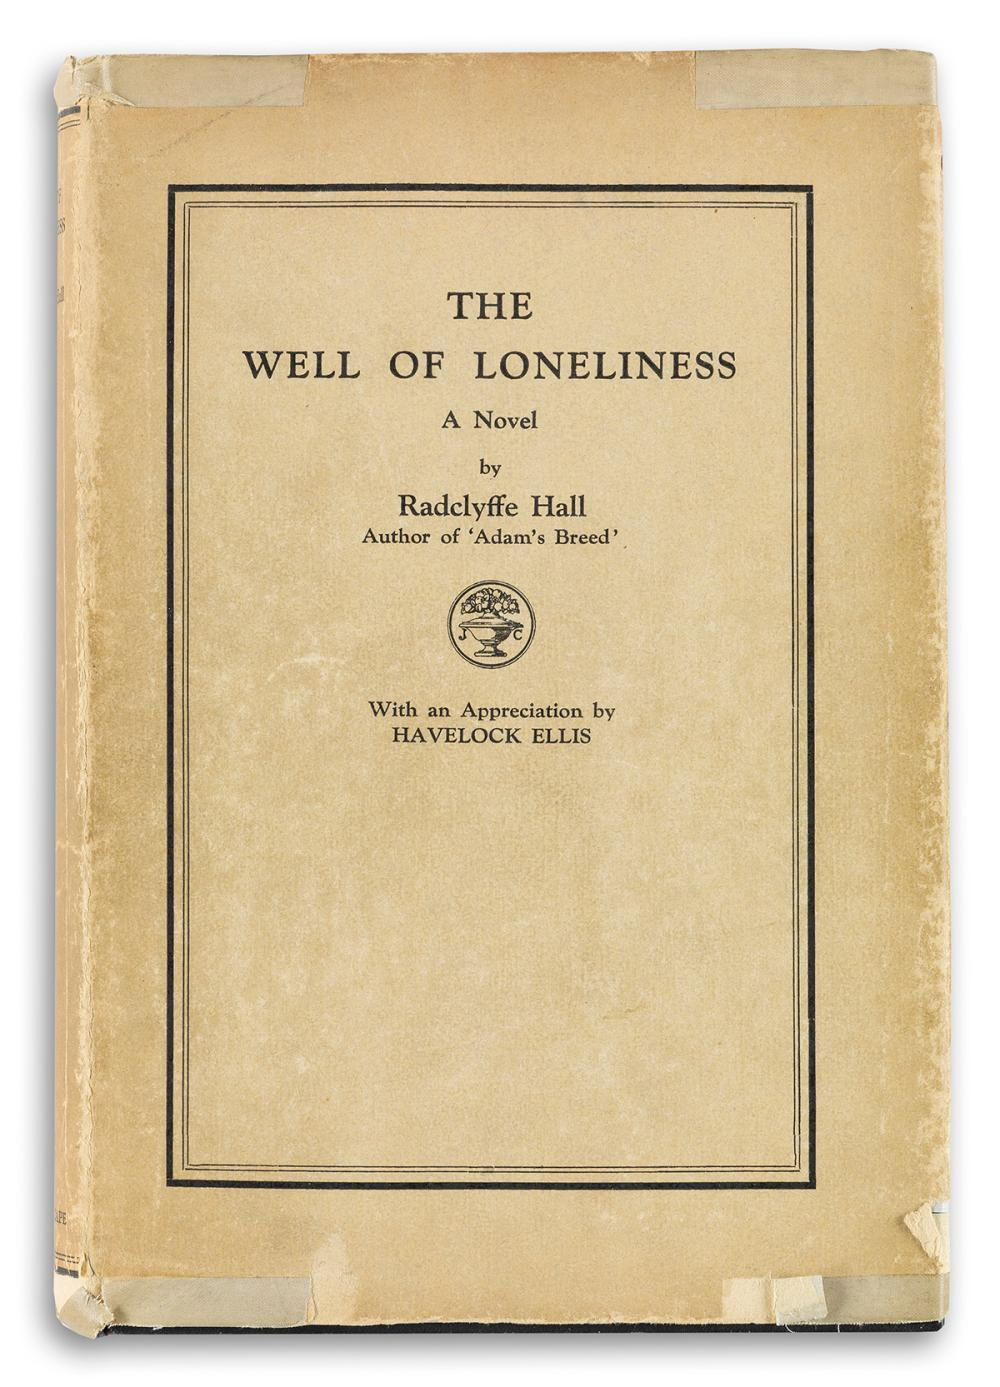 RADCLYFFE HALL (1880-1943)  The Well of Loneliness.